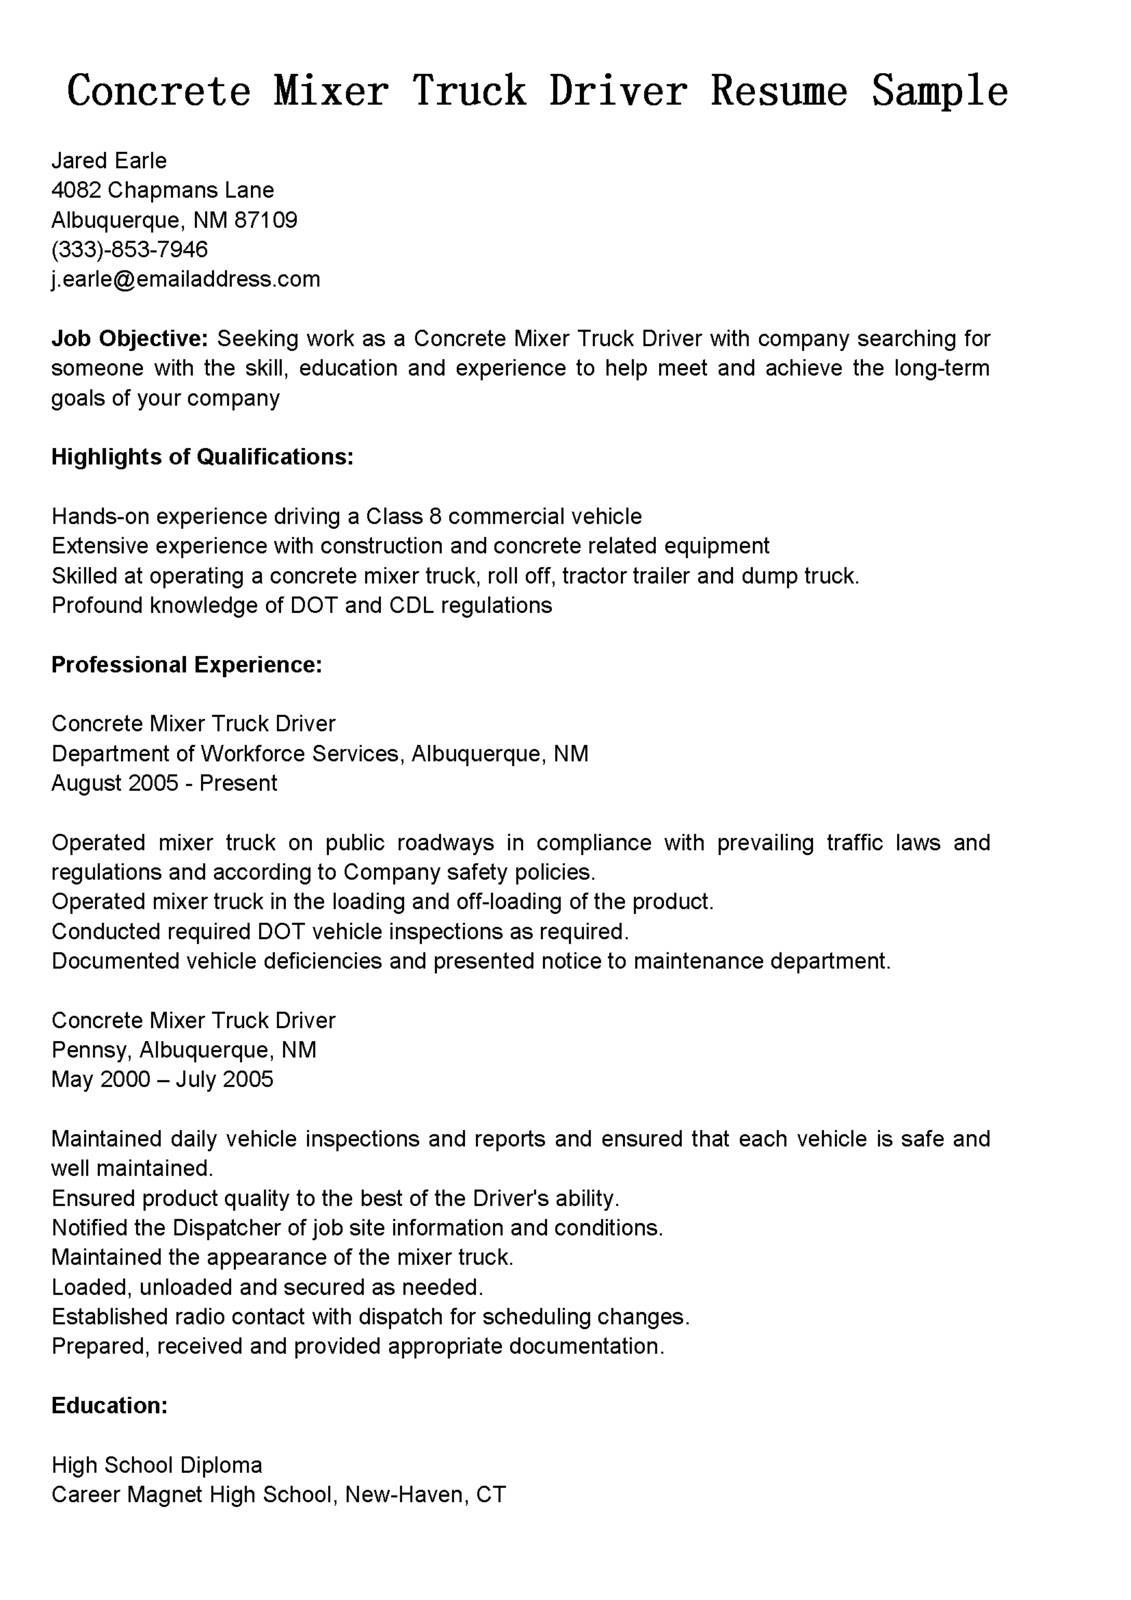 truck driver job description for resume ilivearticles within